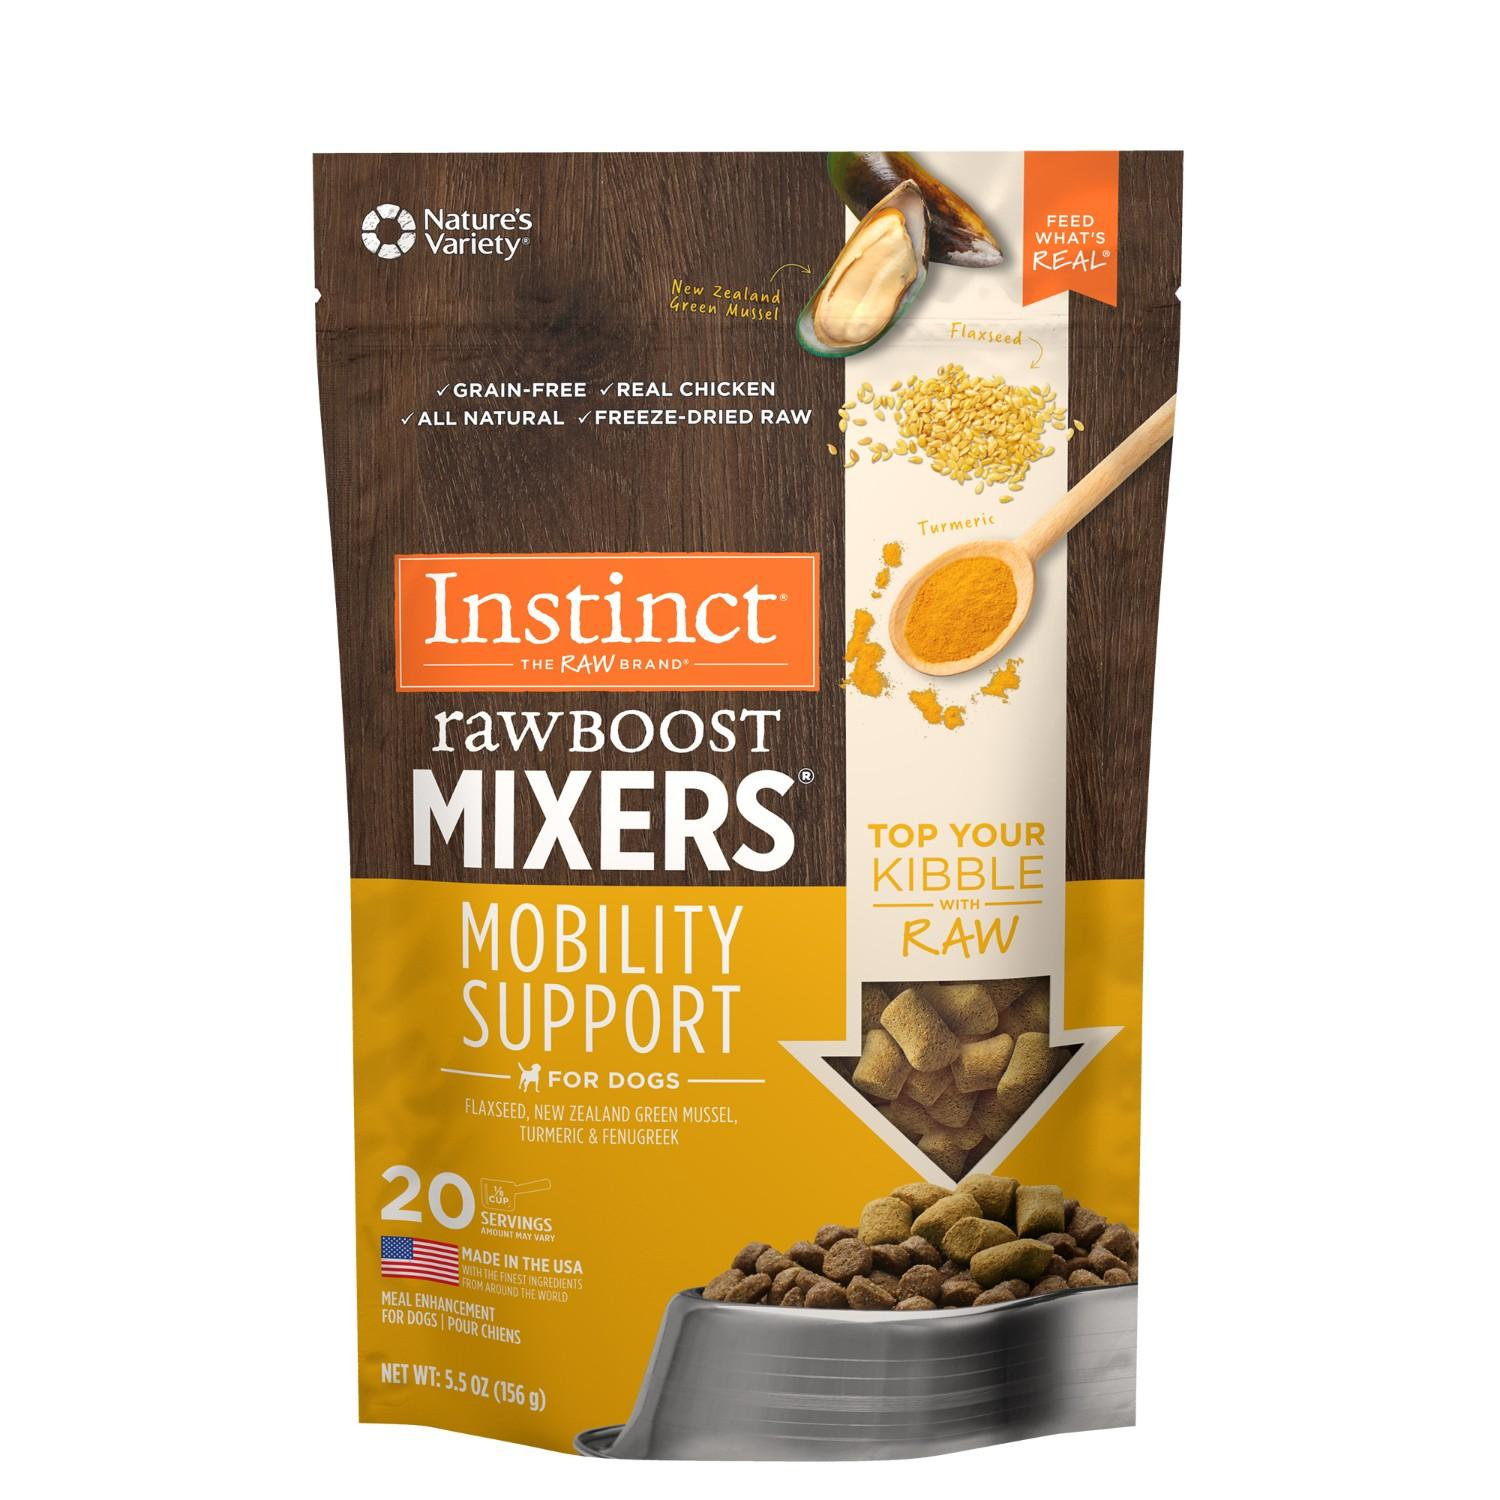 Nature's Variety Instinct Raw Boost Mixers Dog Food Topper - Mobility Support